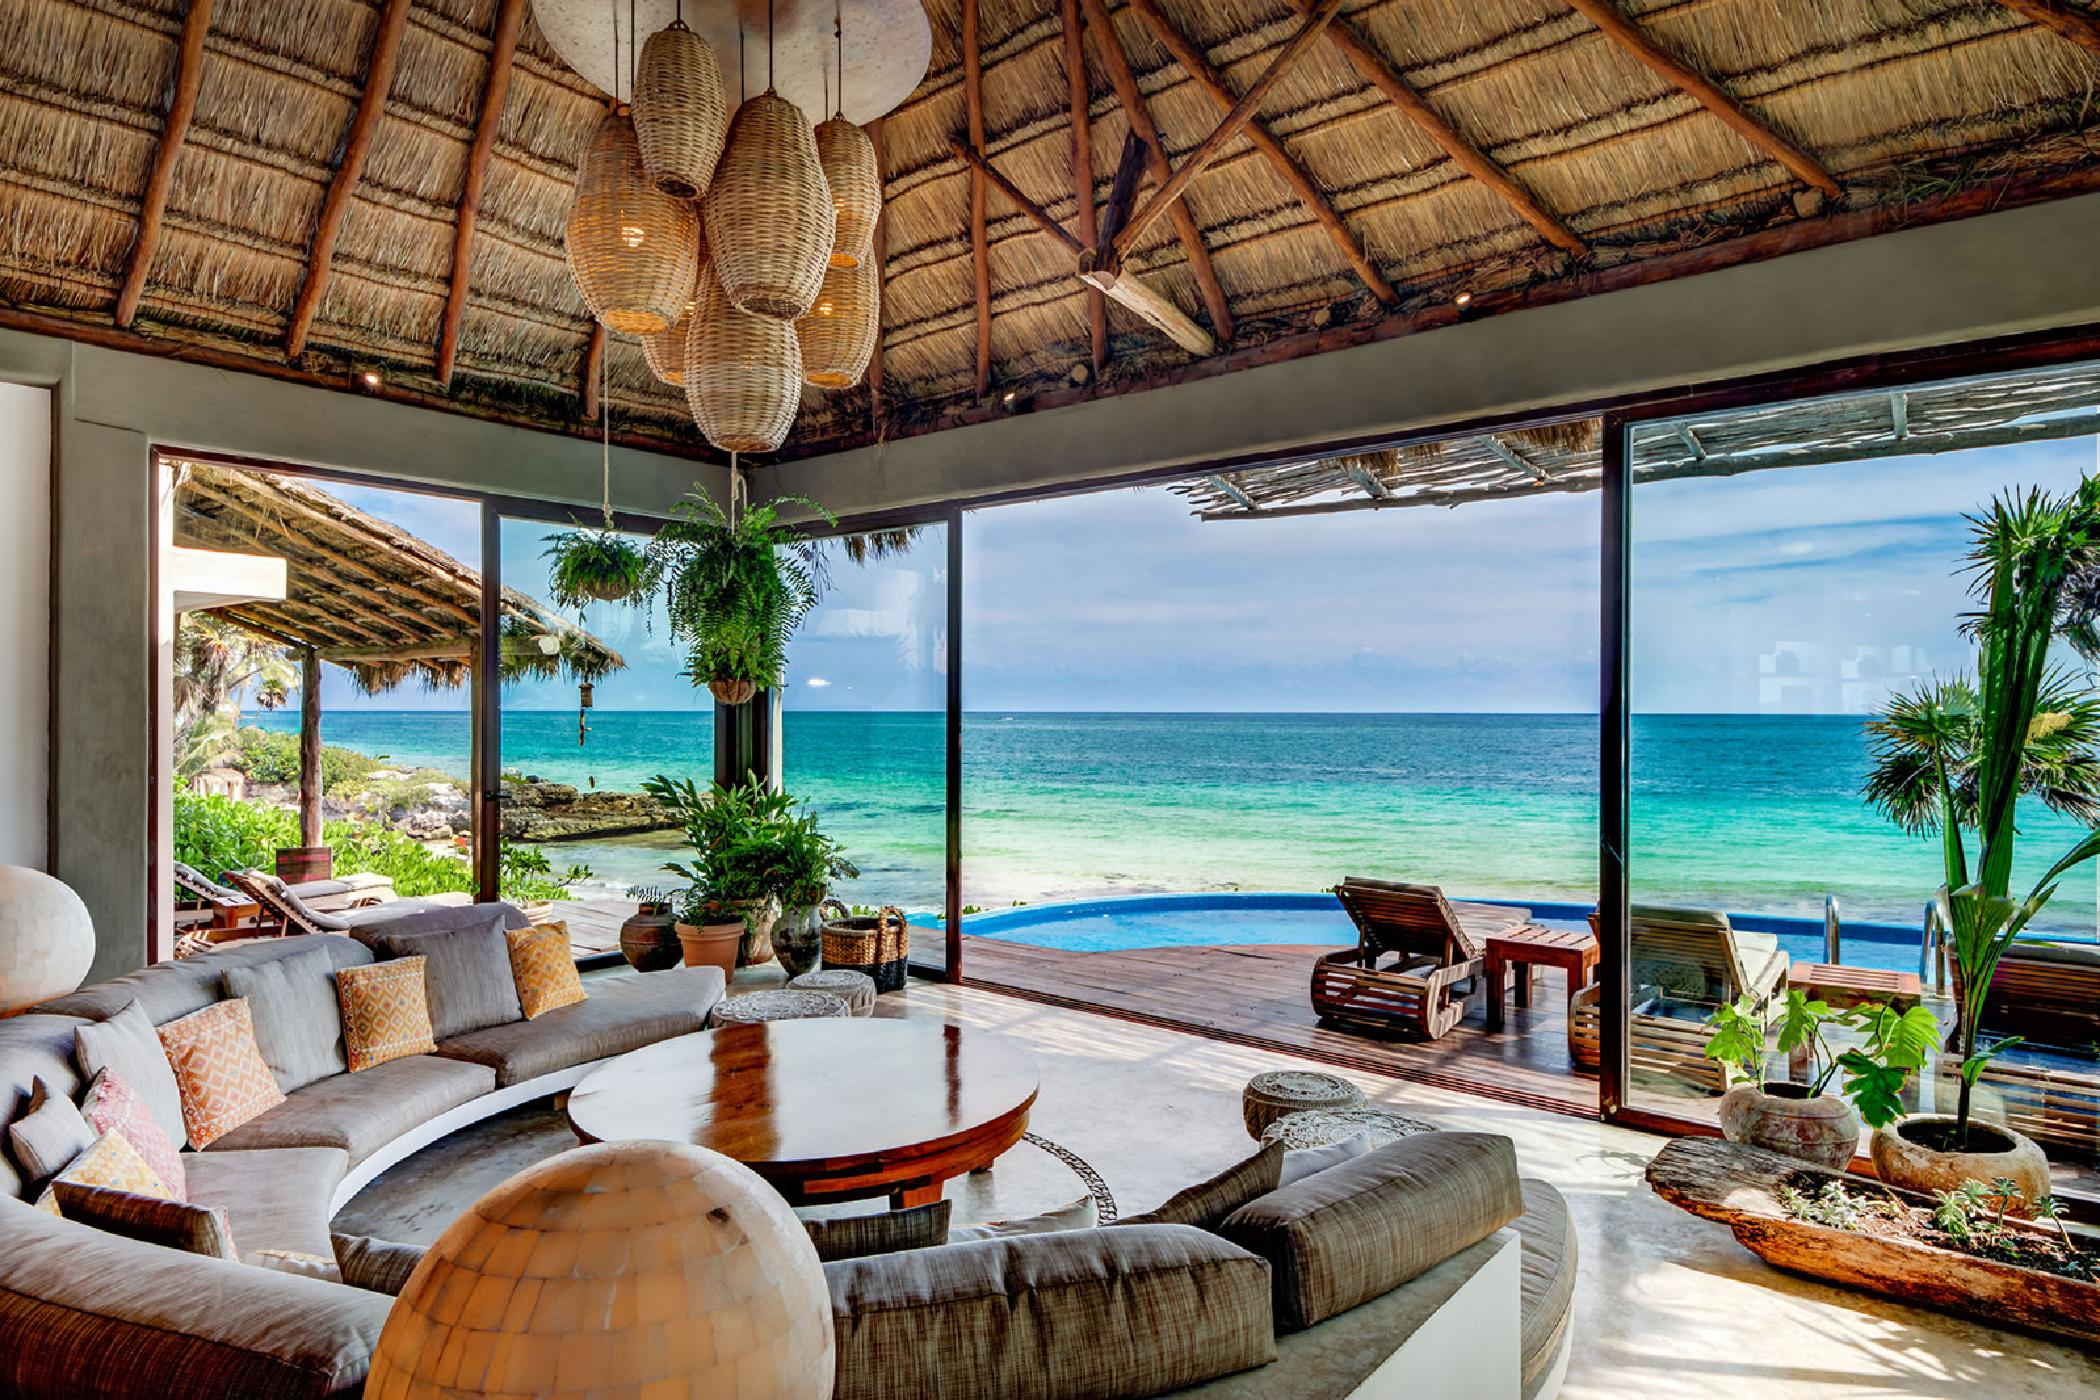 Spectacular oceanfront 5 BDR Tulum villa; infinity pool, amazing views, sun-drenched palapa, offshore reef